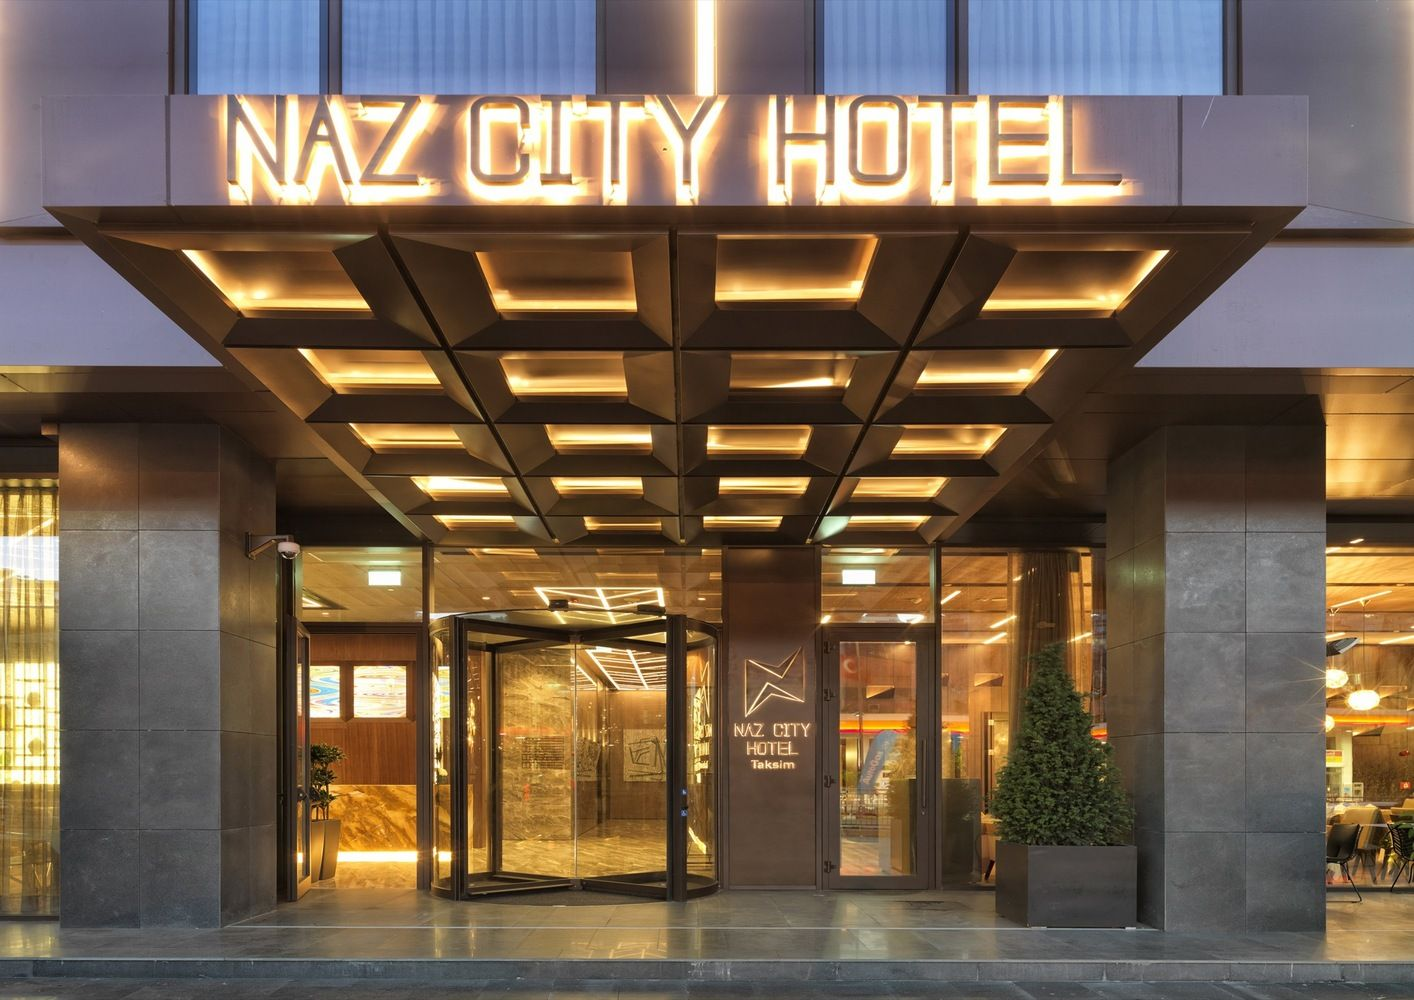 Gallery of naz city hotel taksim metex design group 29 for Design hotel group